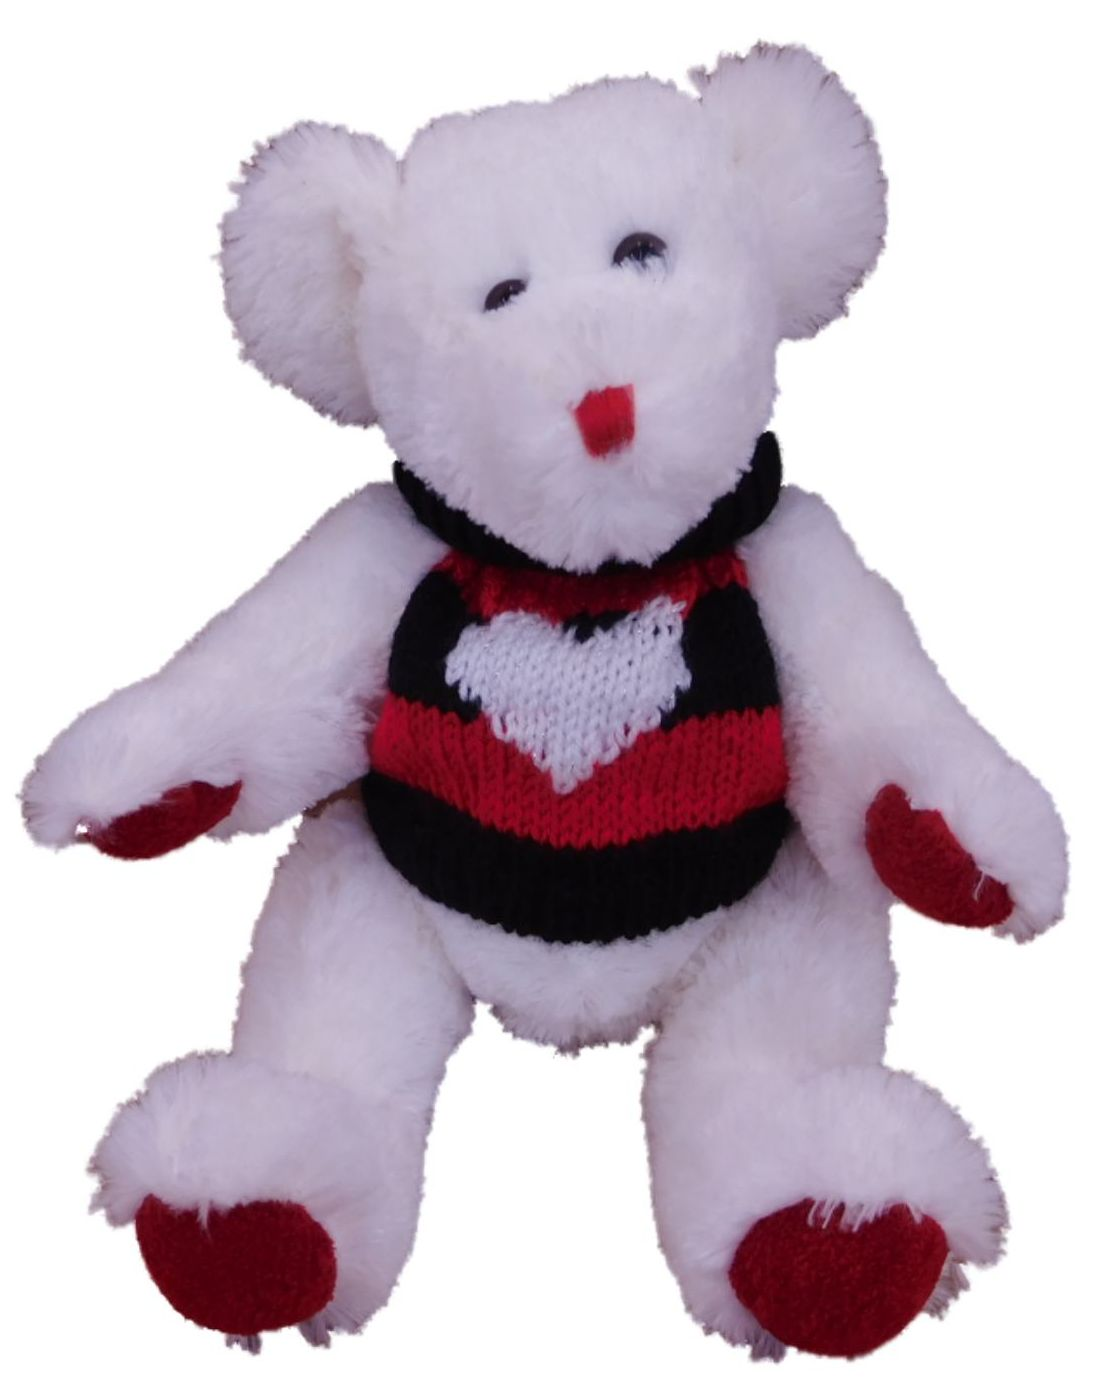 Gifts From The Heart Fuzzy White Teddy Bear Stuffed Animal Valentine Plush Pal by Gifts From The Heart